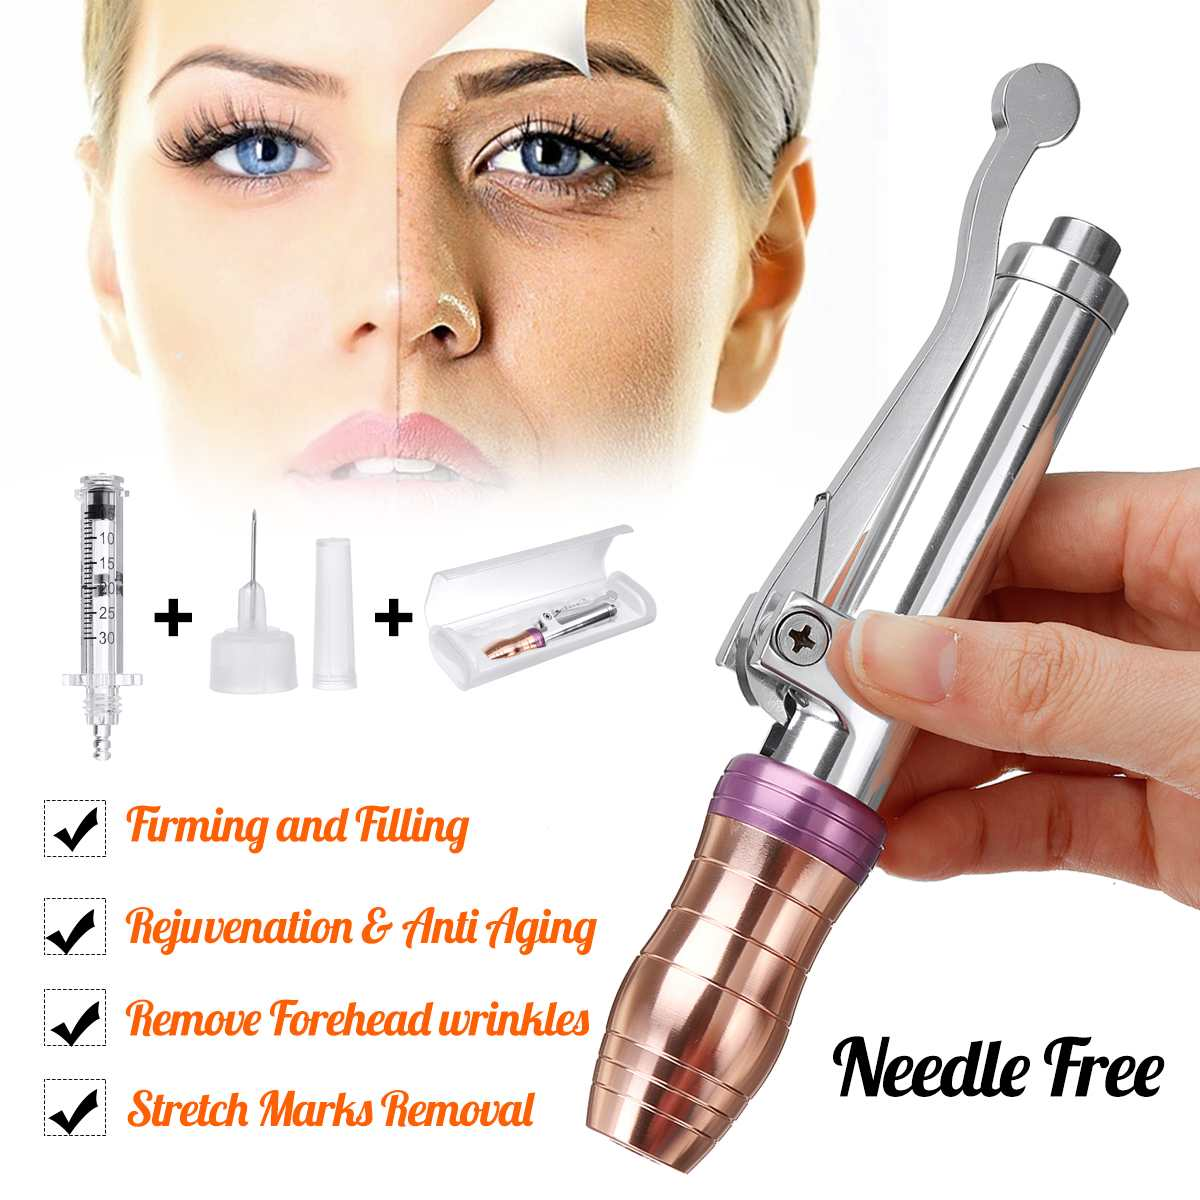 Hyaluronic Injection Pen Massage Atomizer Pen Kit Adjustable Peptide Therapy Pressure Acid Guns Anti Wrinkle Water SyringeHyaluronic Injection Pen Massage Atomizer Pen Kit Adjustable Peptide Therapy Pressure Acid Guns Anti Wrinkle Water Syringe